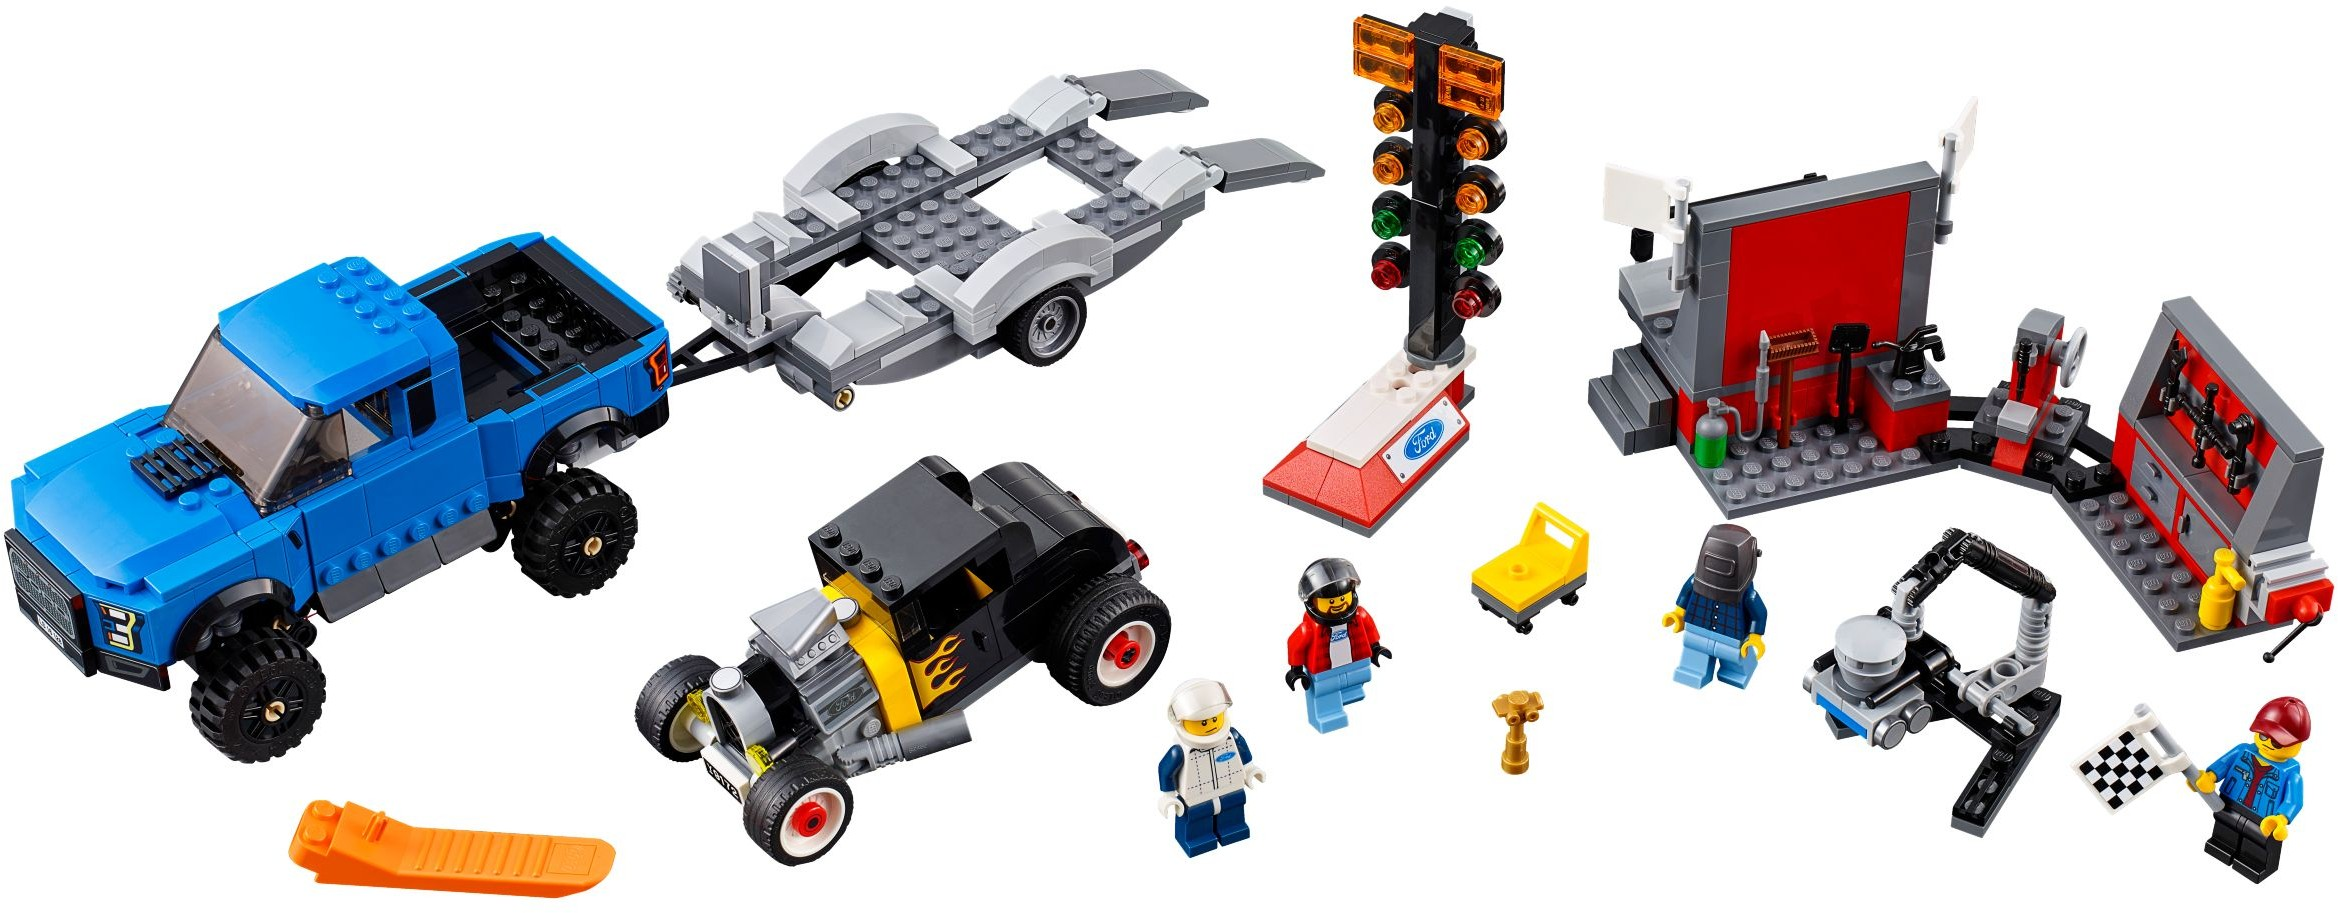 lego hot rod club instructions